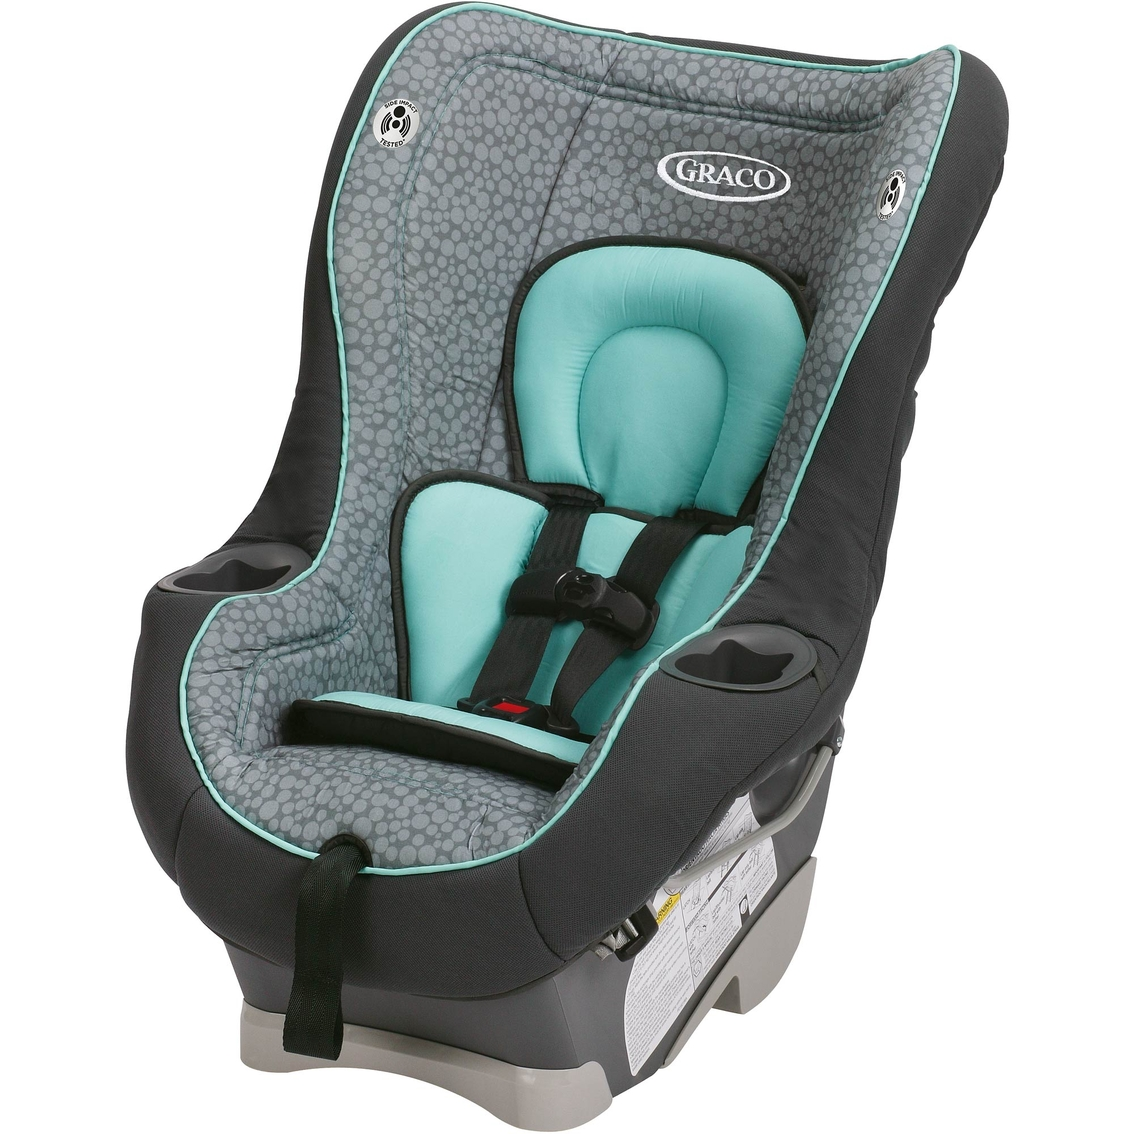 Graco My Ride 65 Convertible Car Seat | Convertible Seats ...